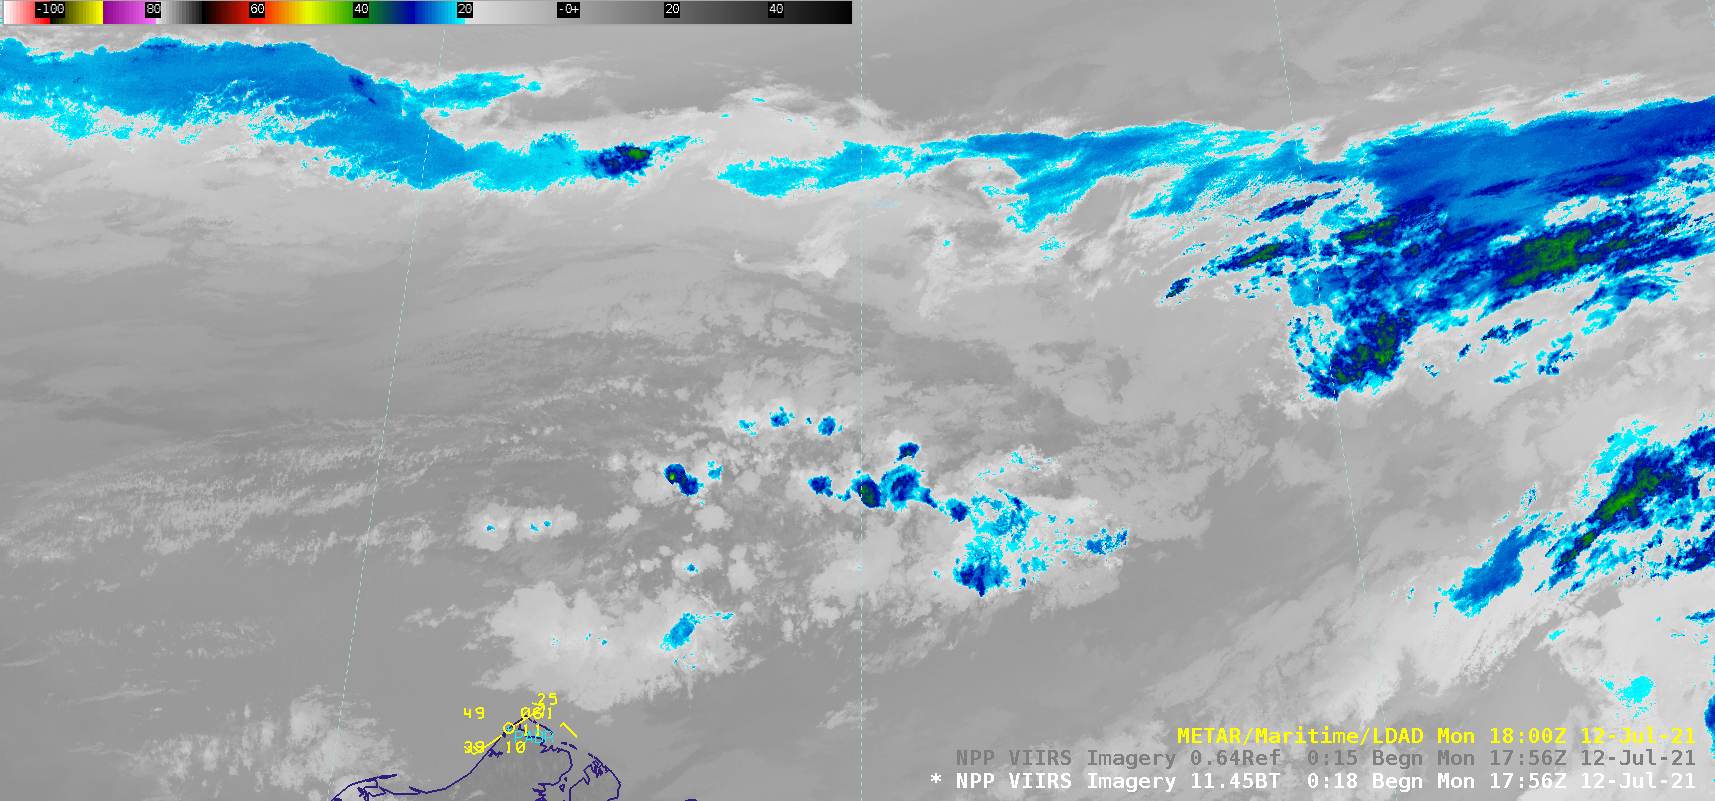 Suomi NPP VIIRS Infrared Window (11.45 µm) and Visible (0.64 µm) images [click to play animation | MP4]